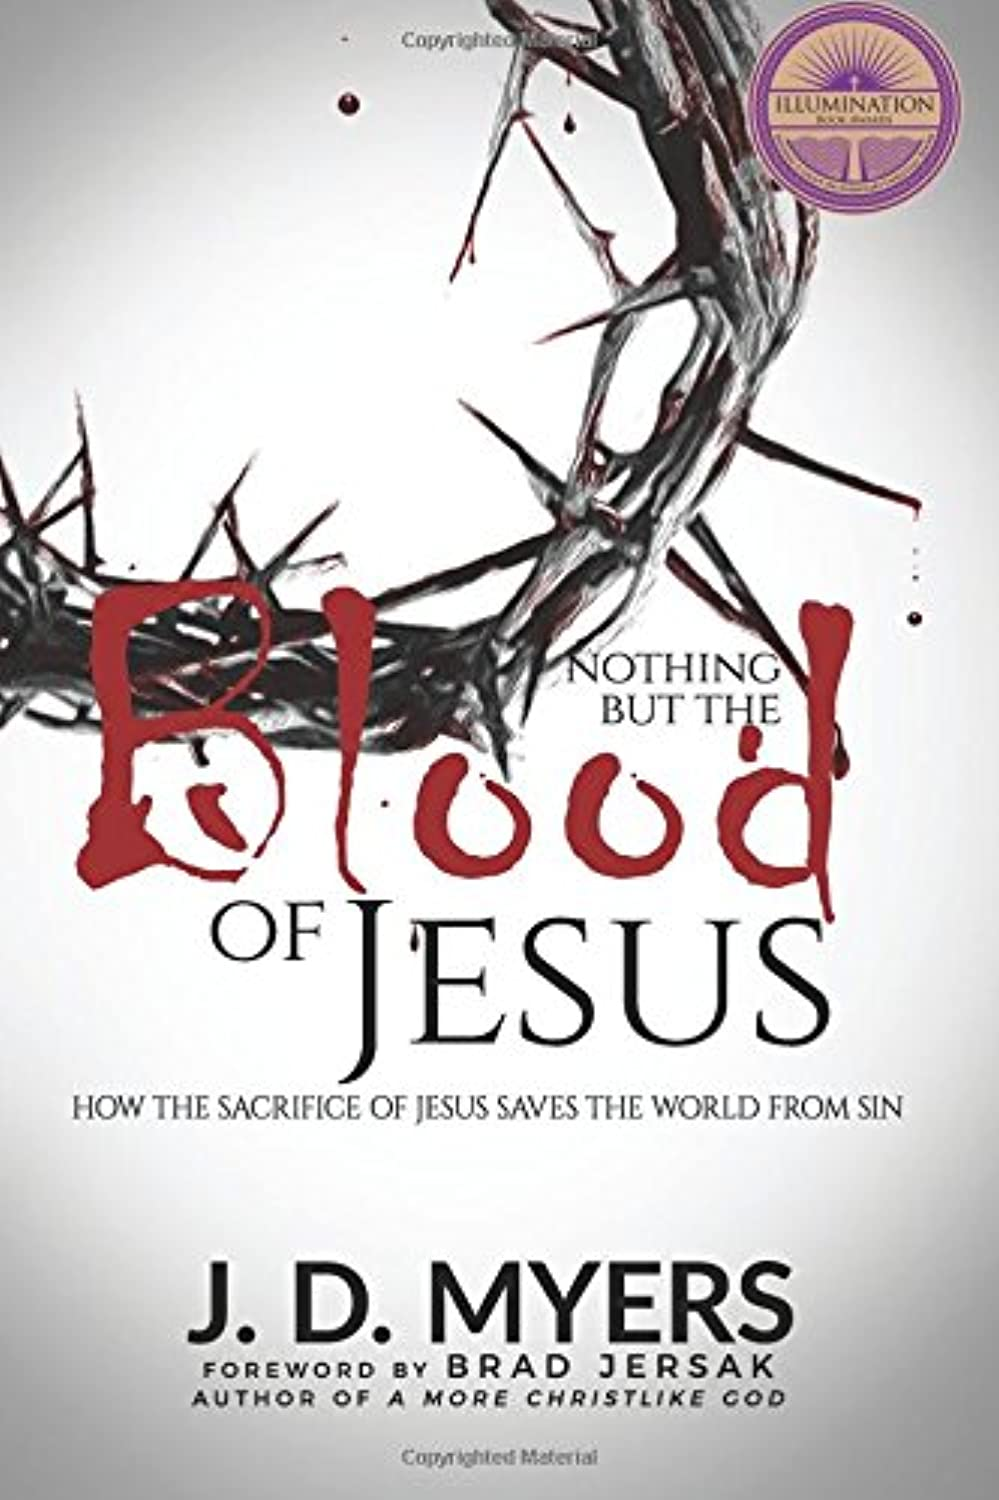 Nothing but the Blood of Jesus: How the Sacrifice of Jesus Saves the World from Sin ojpisw7007512